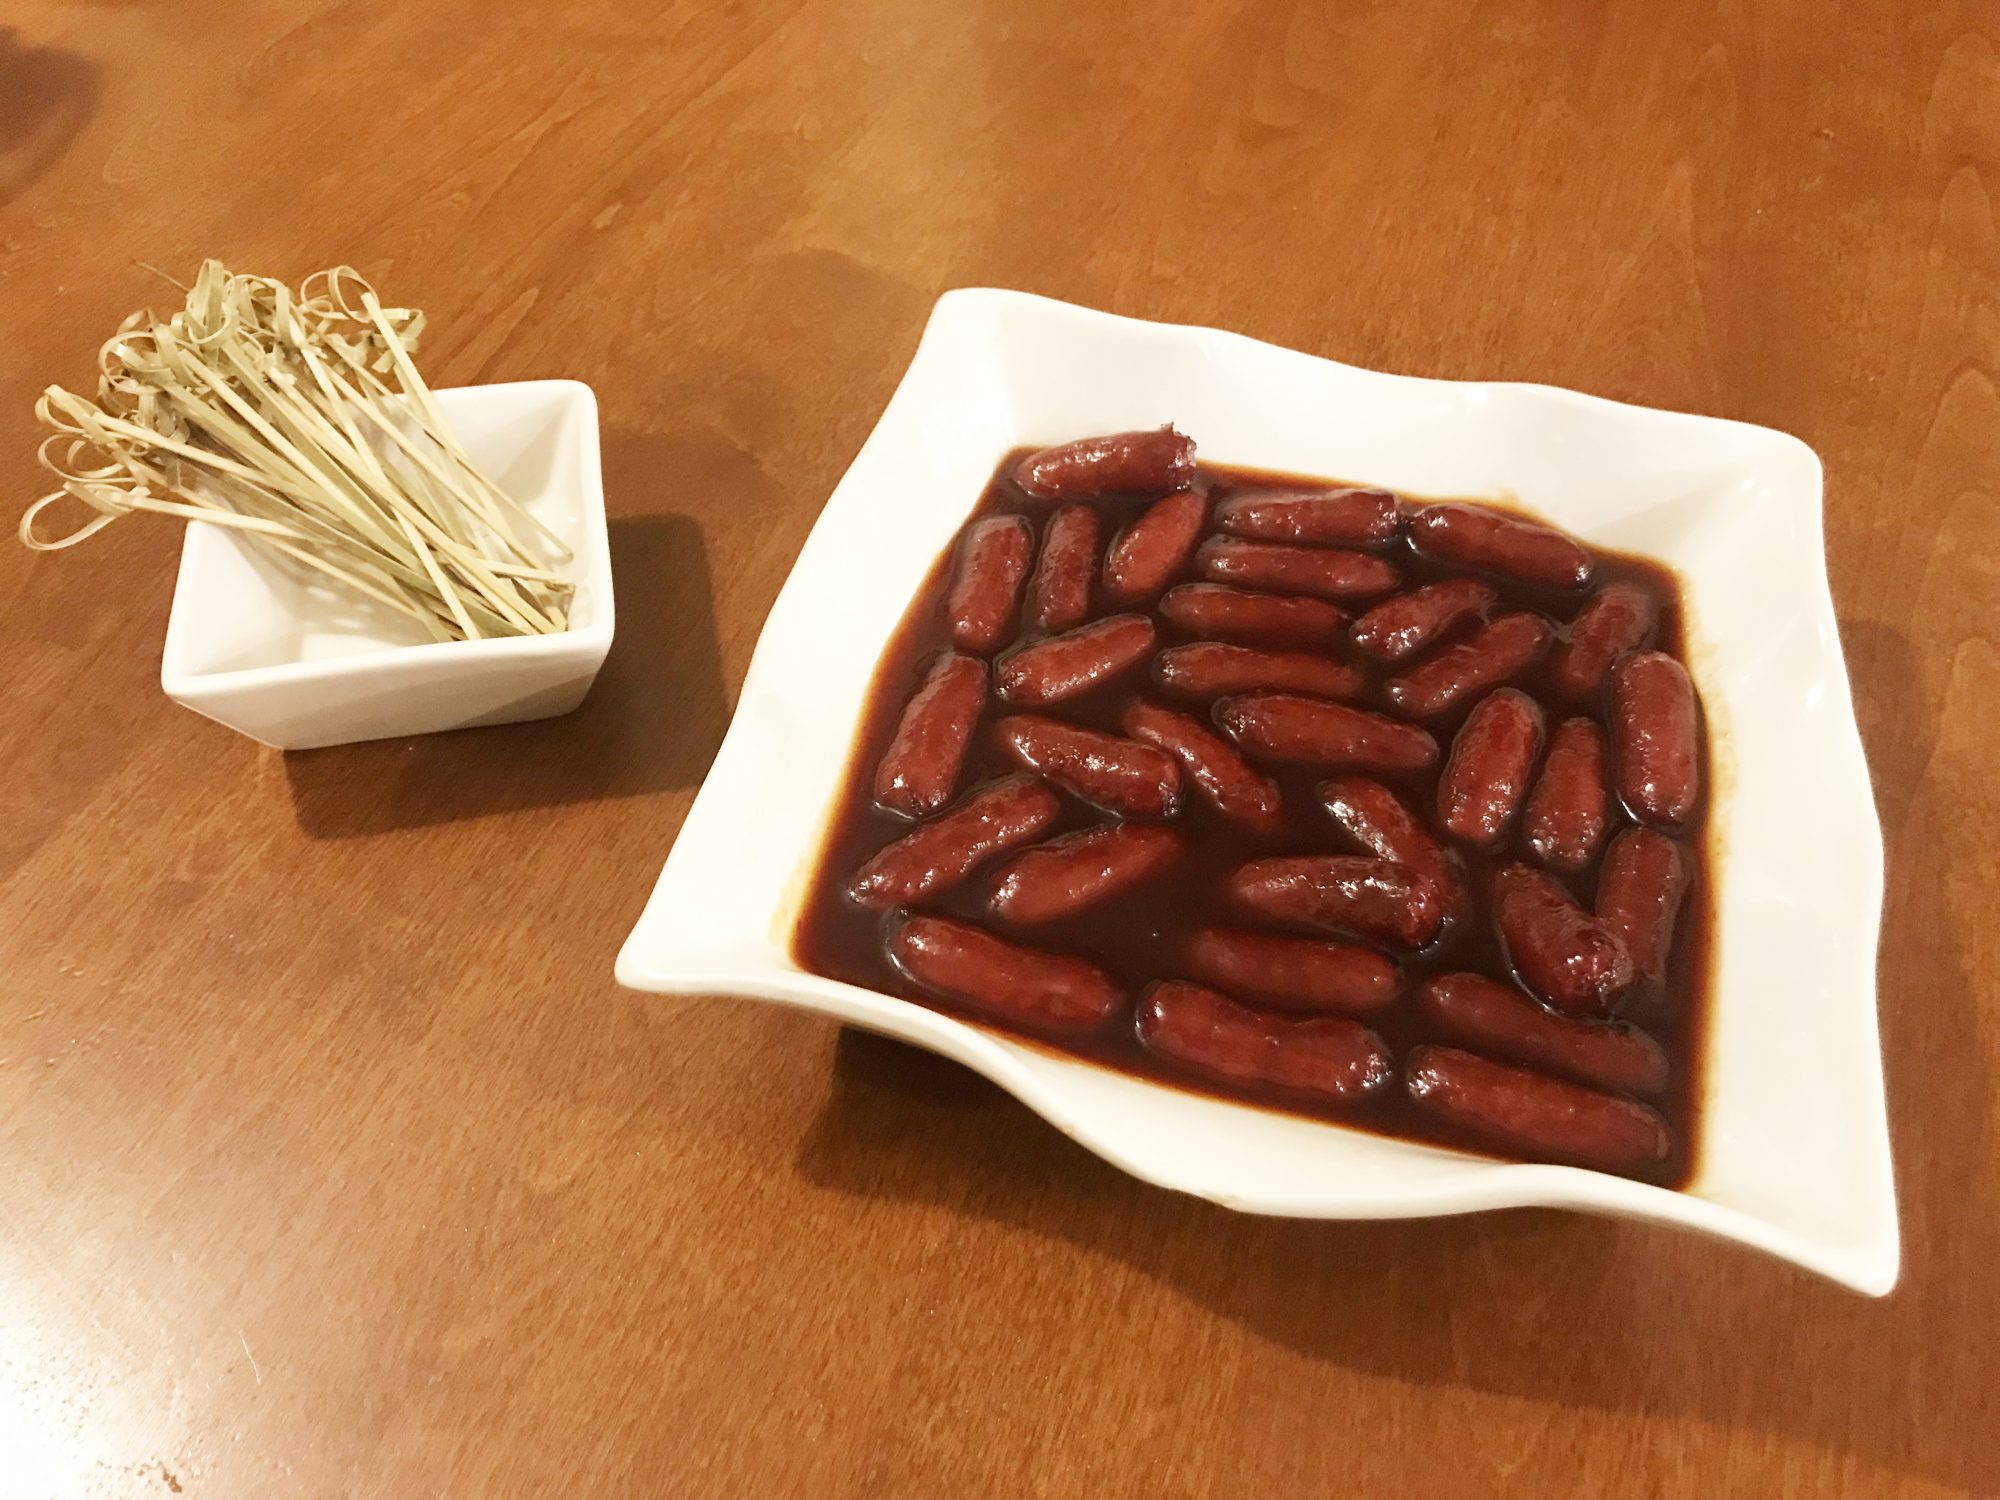 Little Smoked Sausages in Grape Jelly and Chili Sauce